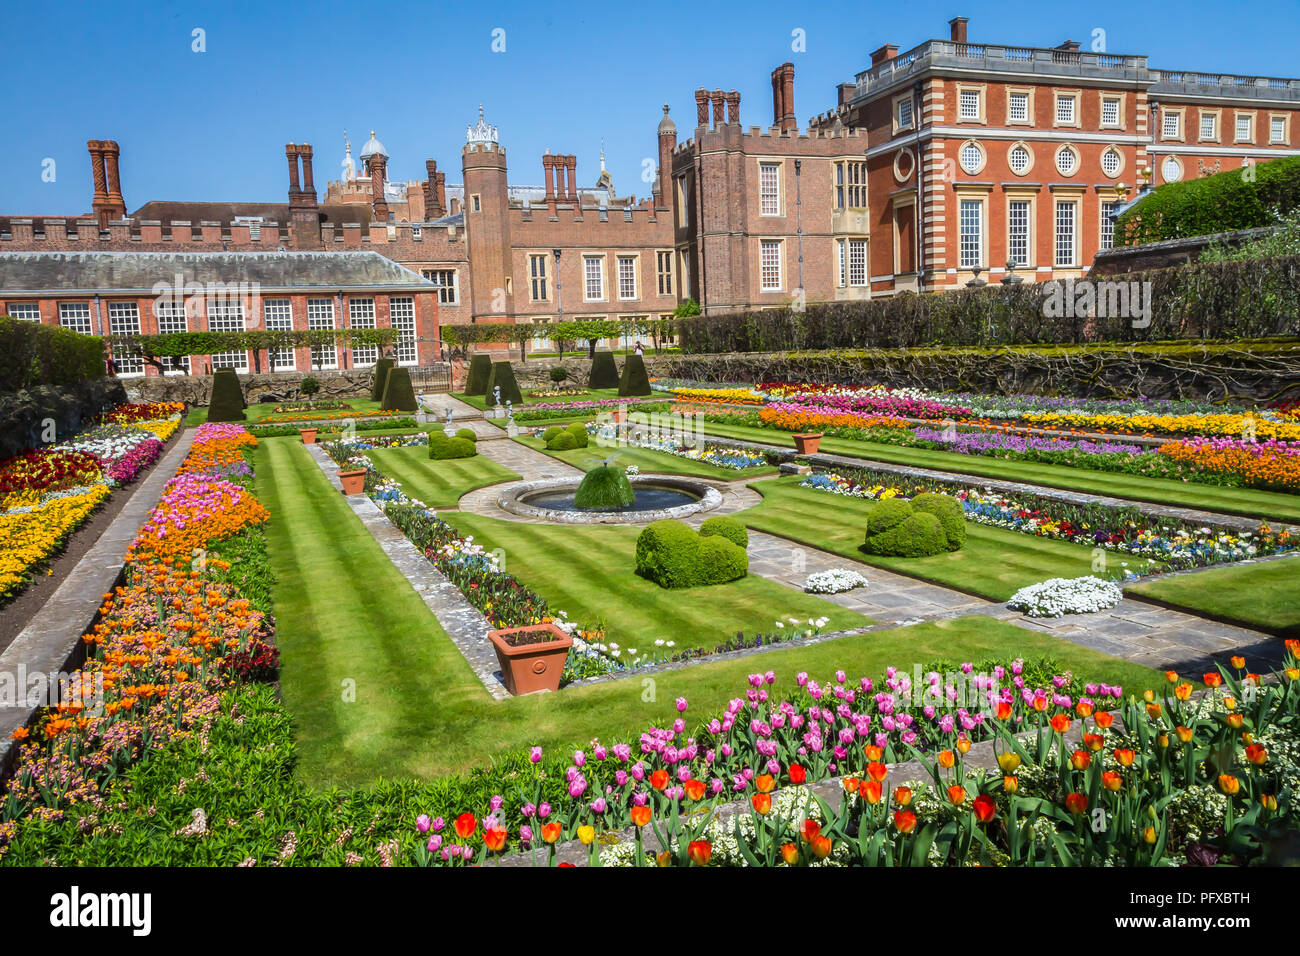 Hampton Court Palace, Richmond, London, UK - 22 April 2018 - the palace gardens - Stock Image